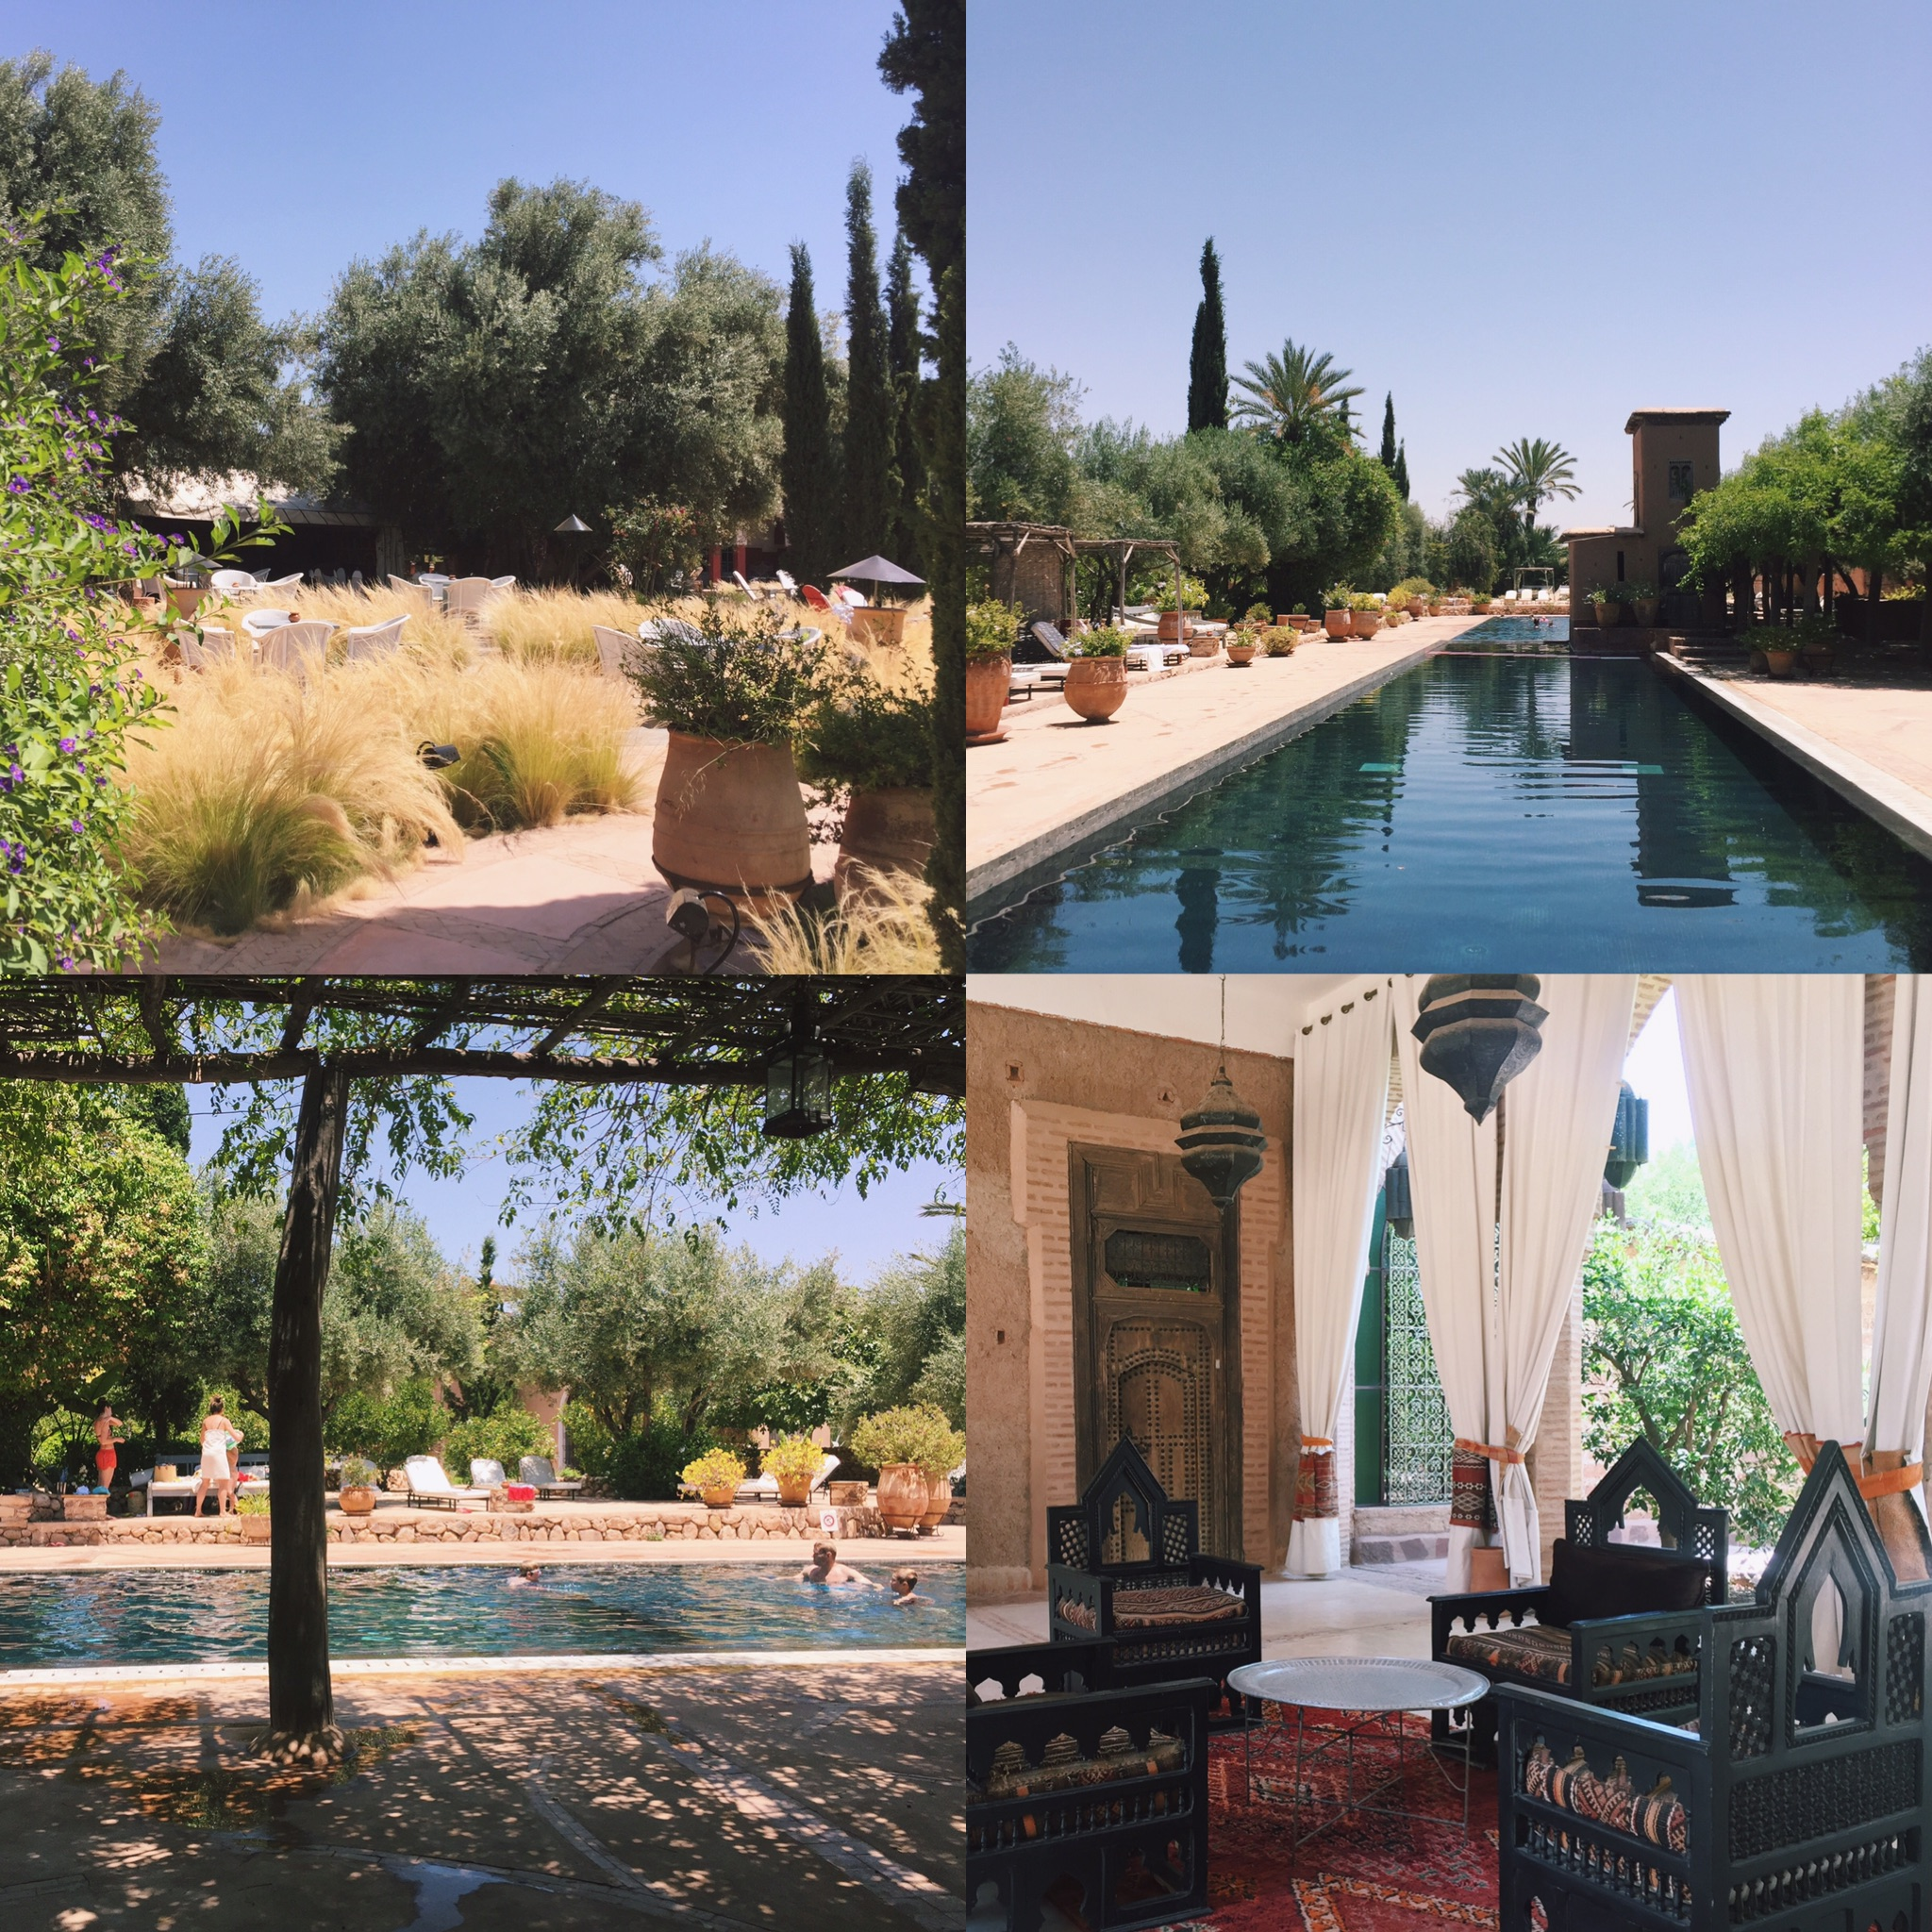 some snaps from the beautiful Beldi